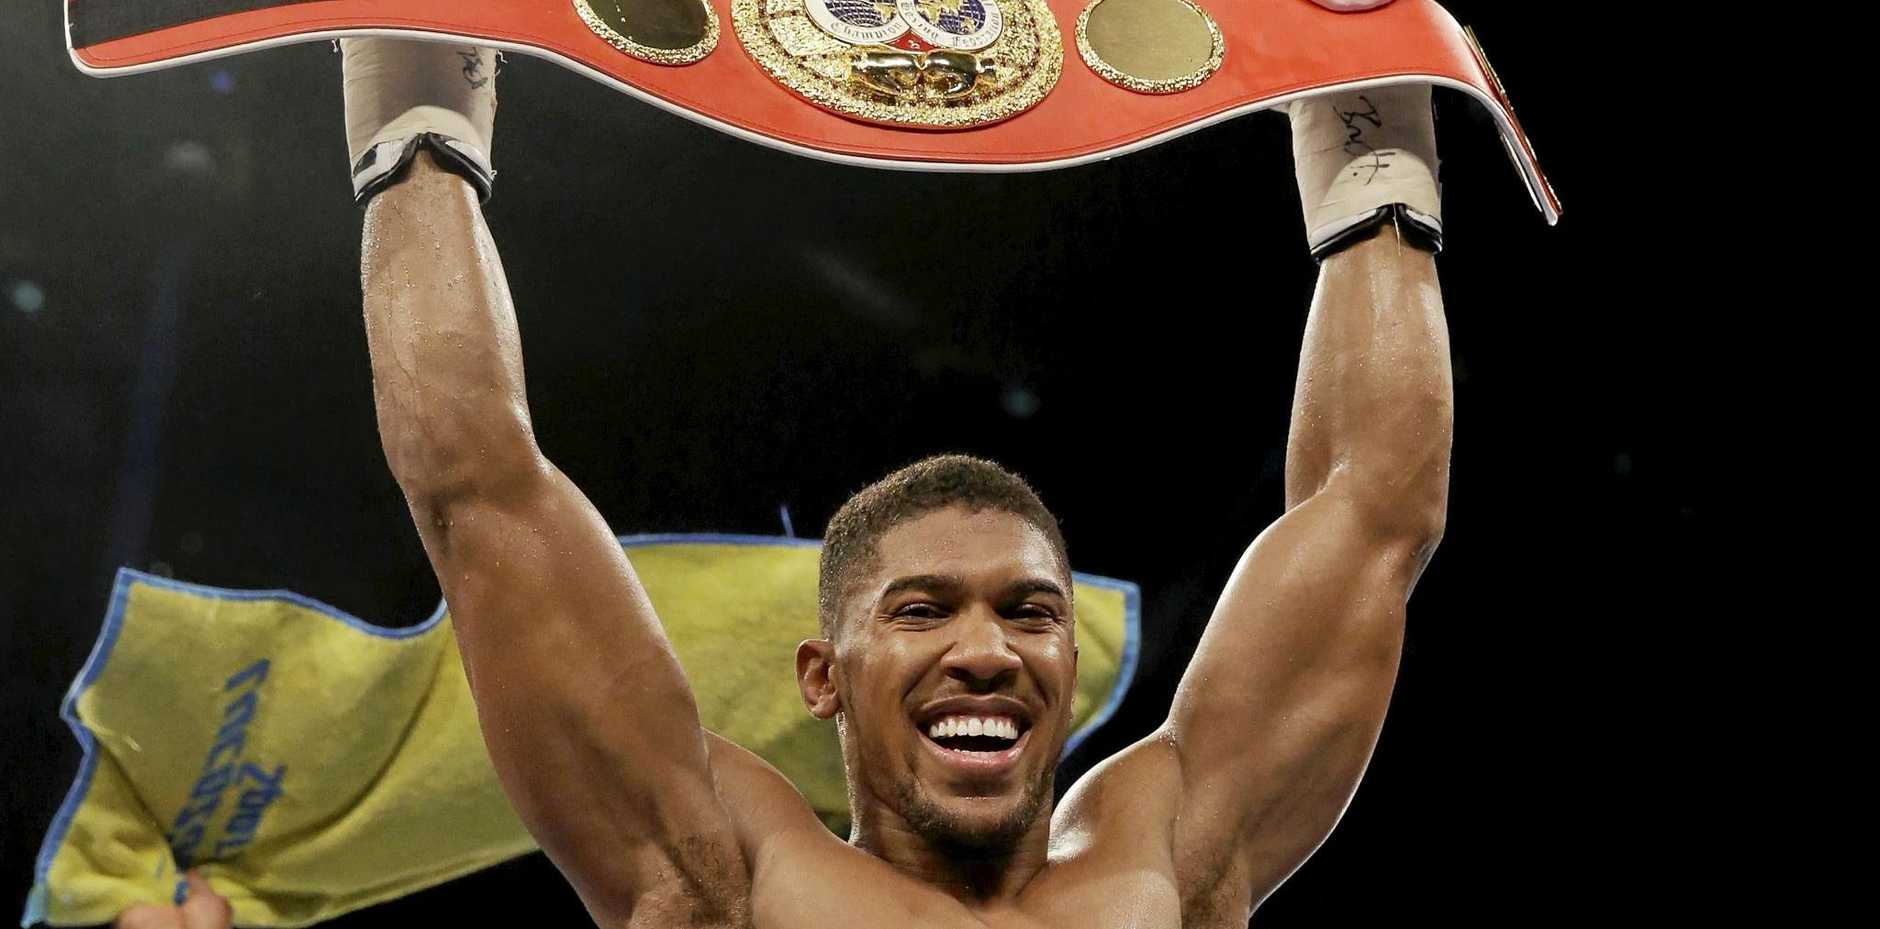 British boxer Anthony Joshua holds up his belt after defeating US boxer Dominic Breazeale in their IBF heavyweight title bout at the O2 Arena in London in June.